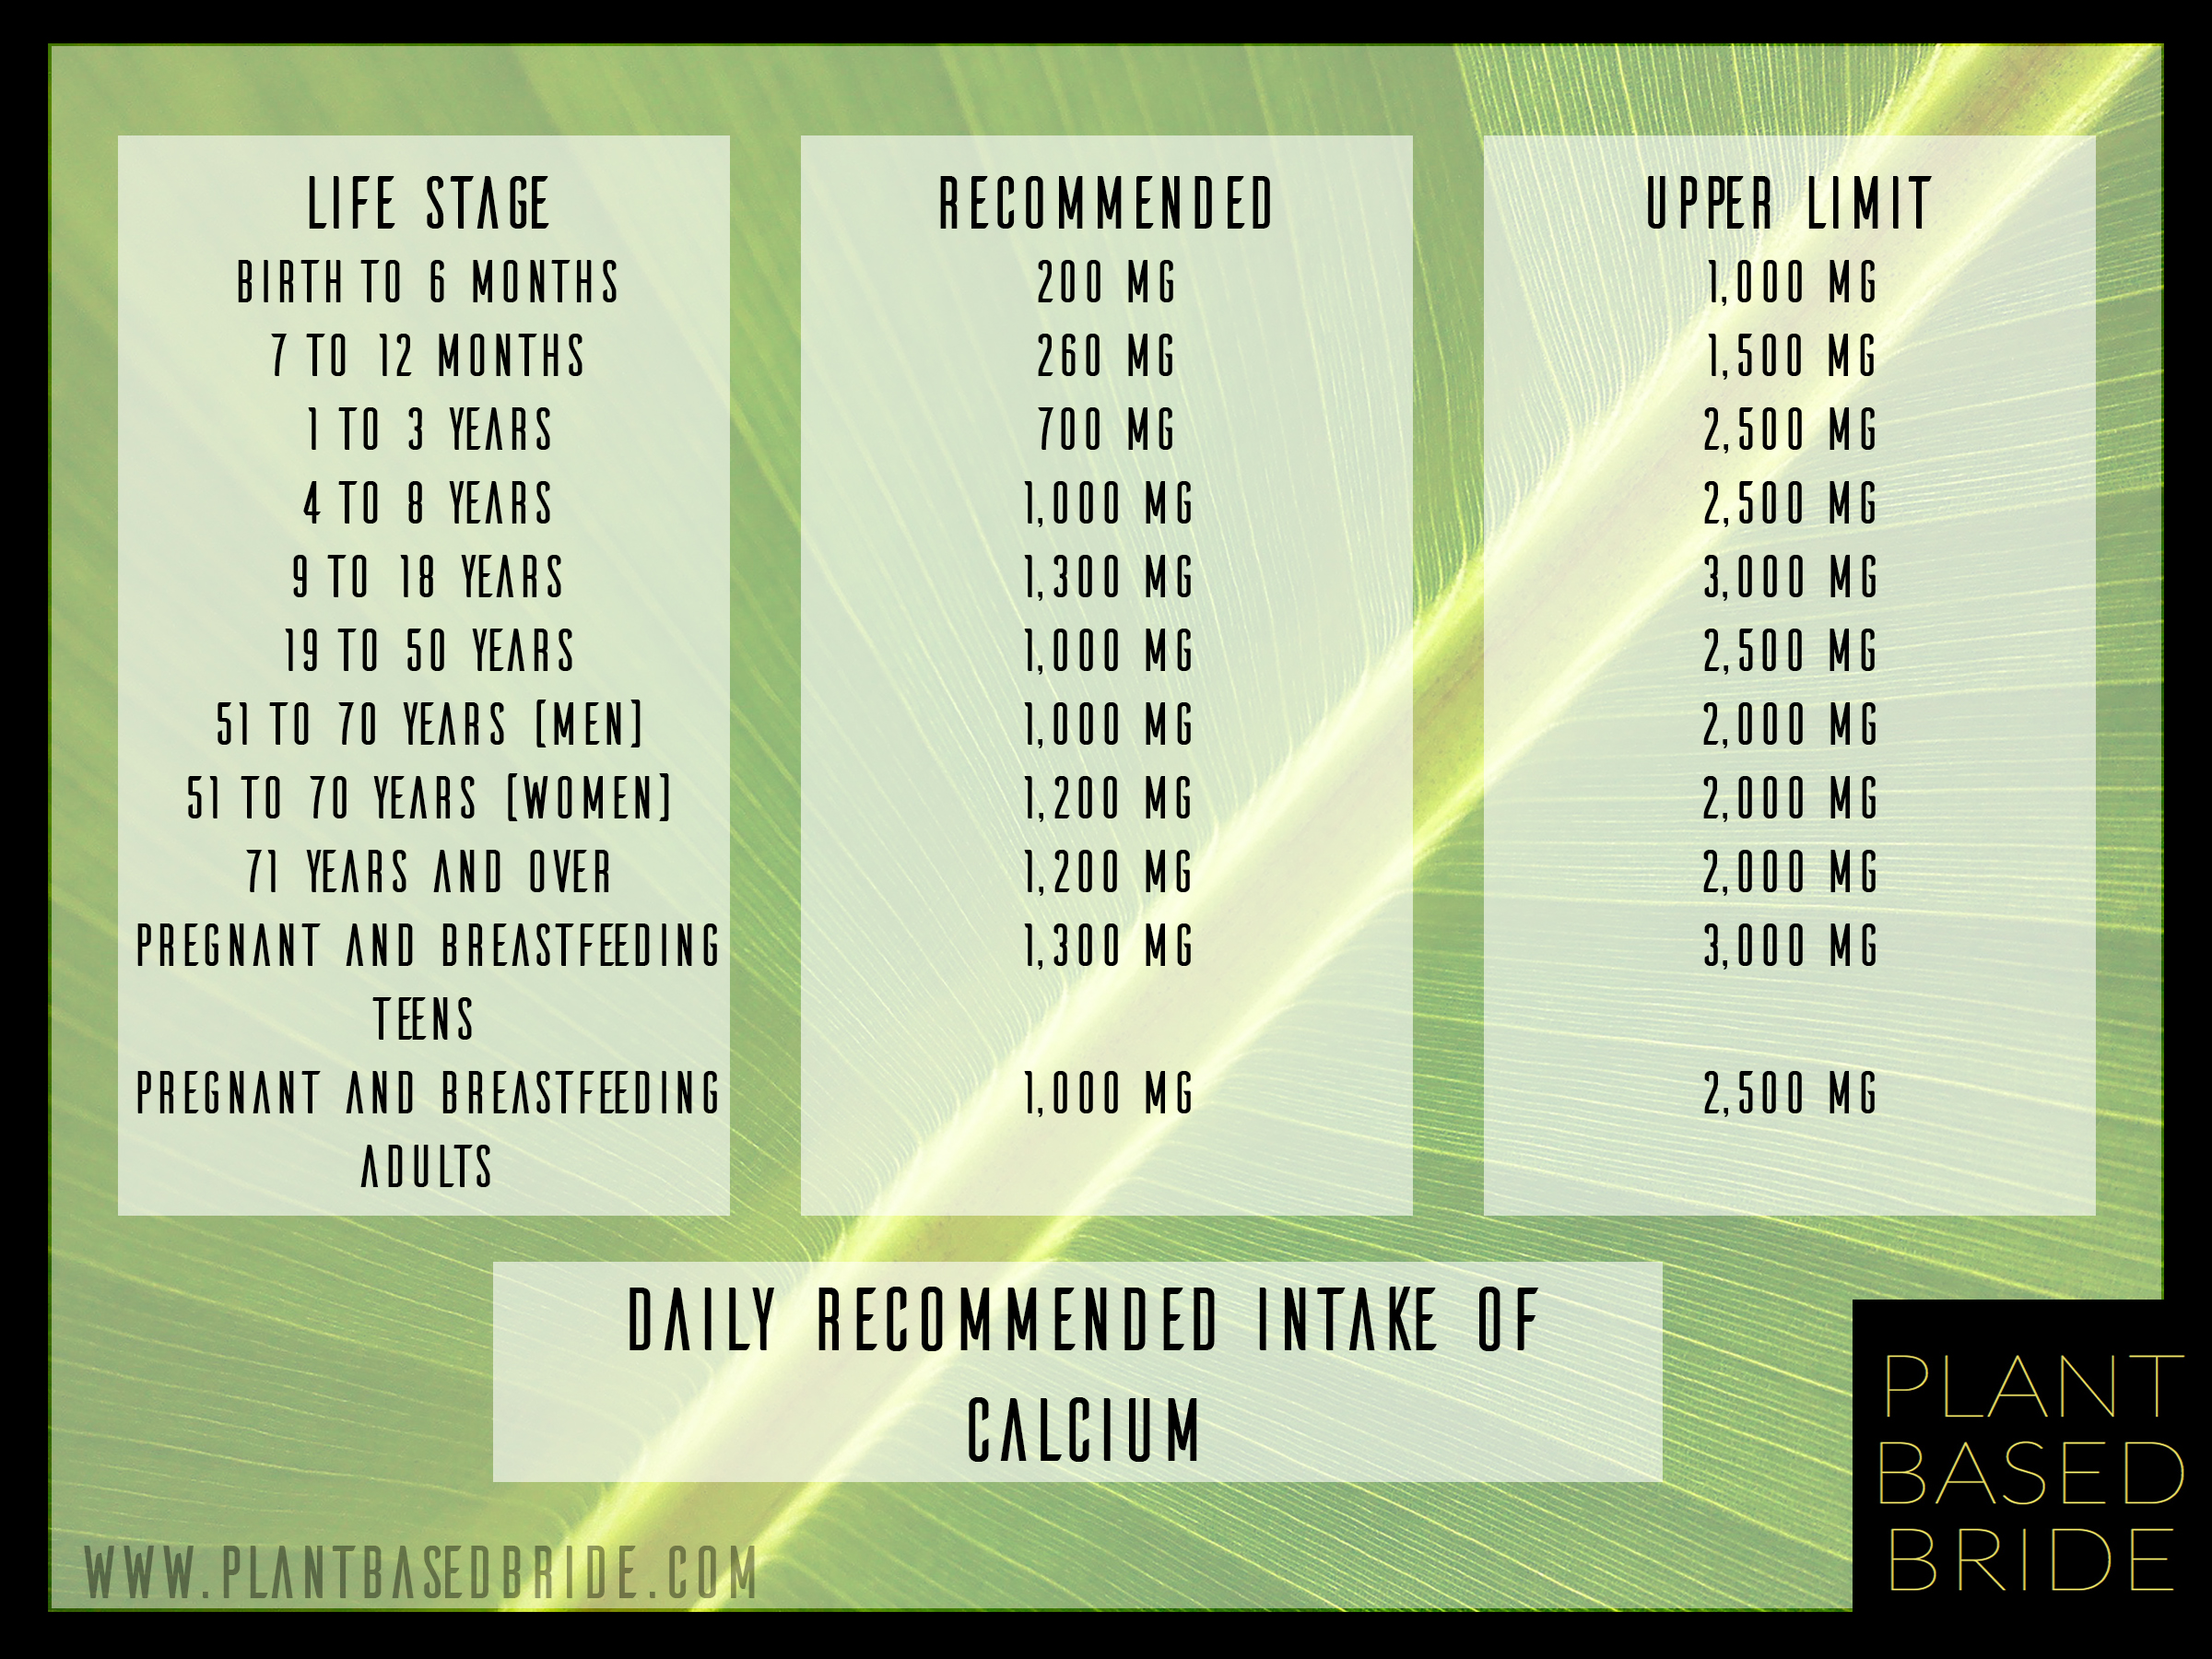 Daily Recommended Intake of Calcium from Plant Based Bride.com